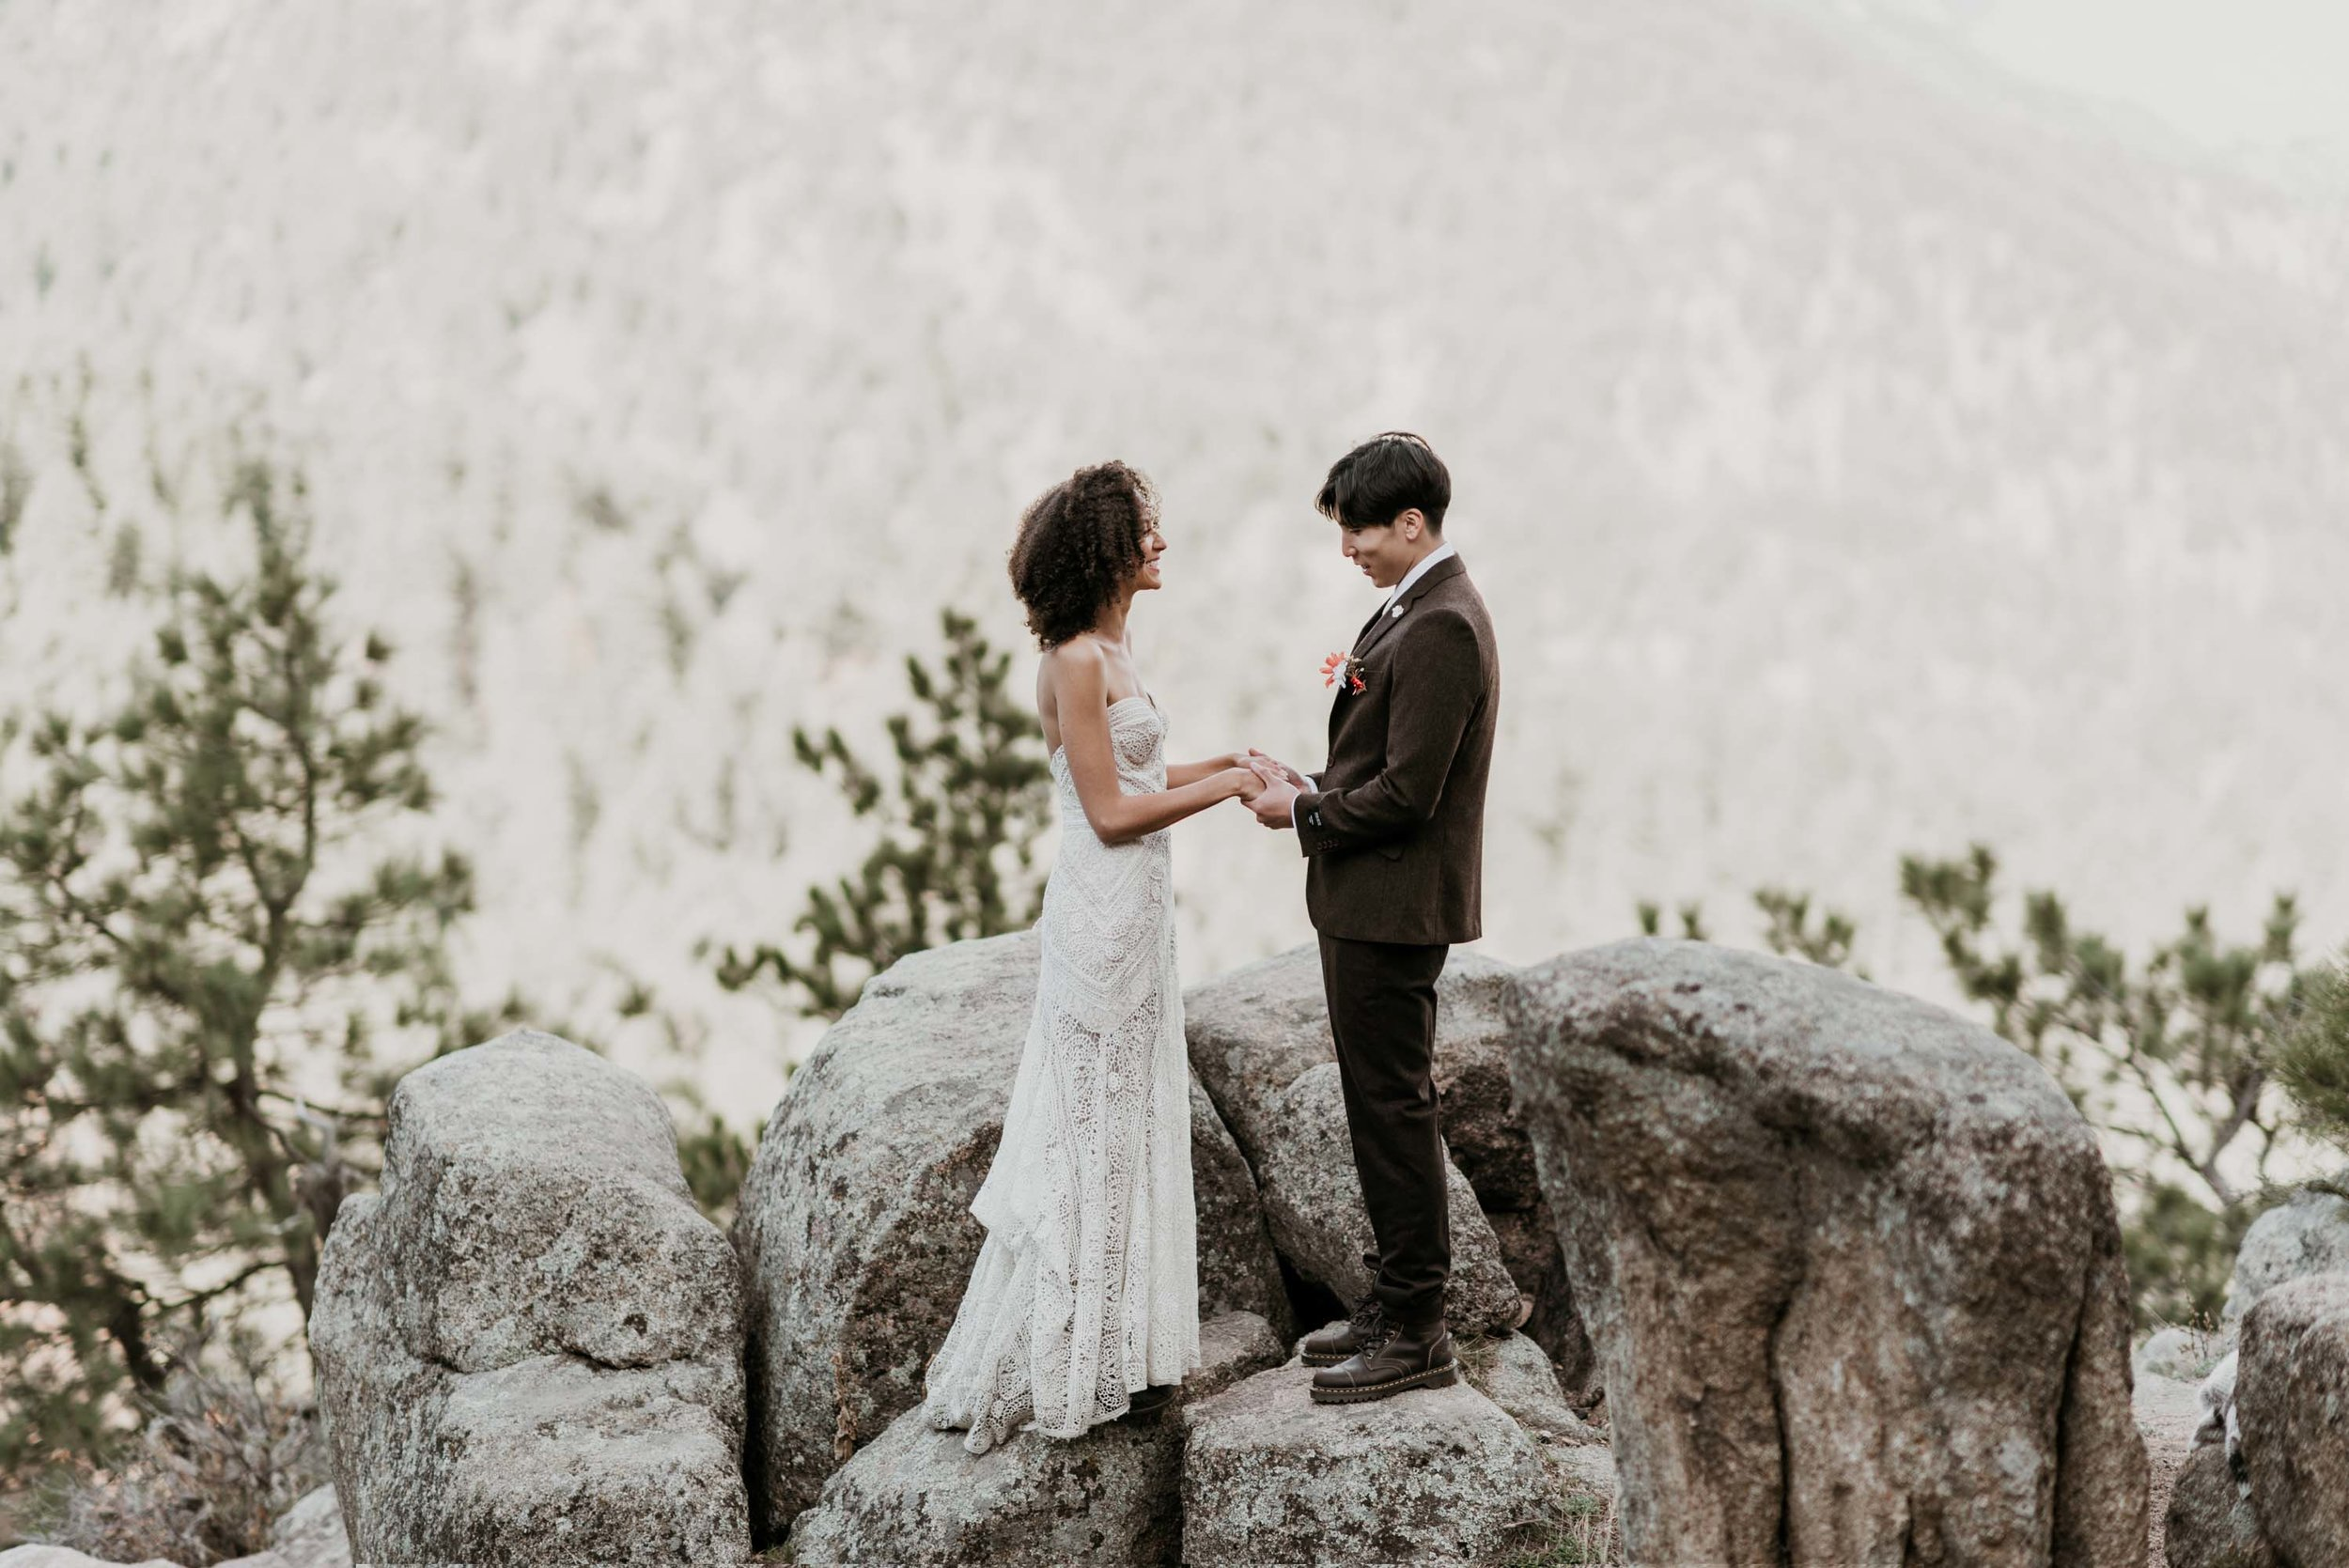 A simple wedding ceremony in the Colorado foothills. The bride wears rue de seine and the groom is in a dark wool tweed.